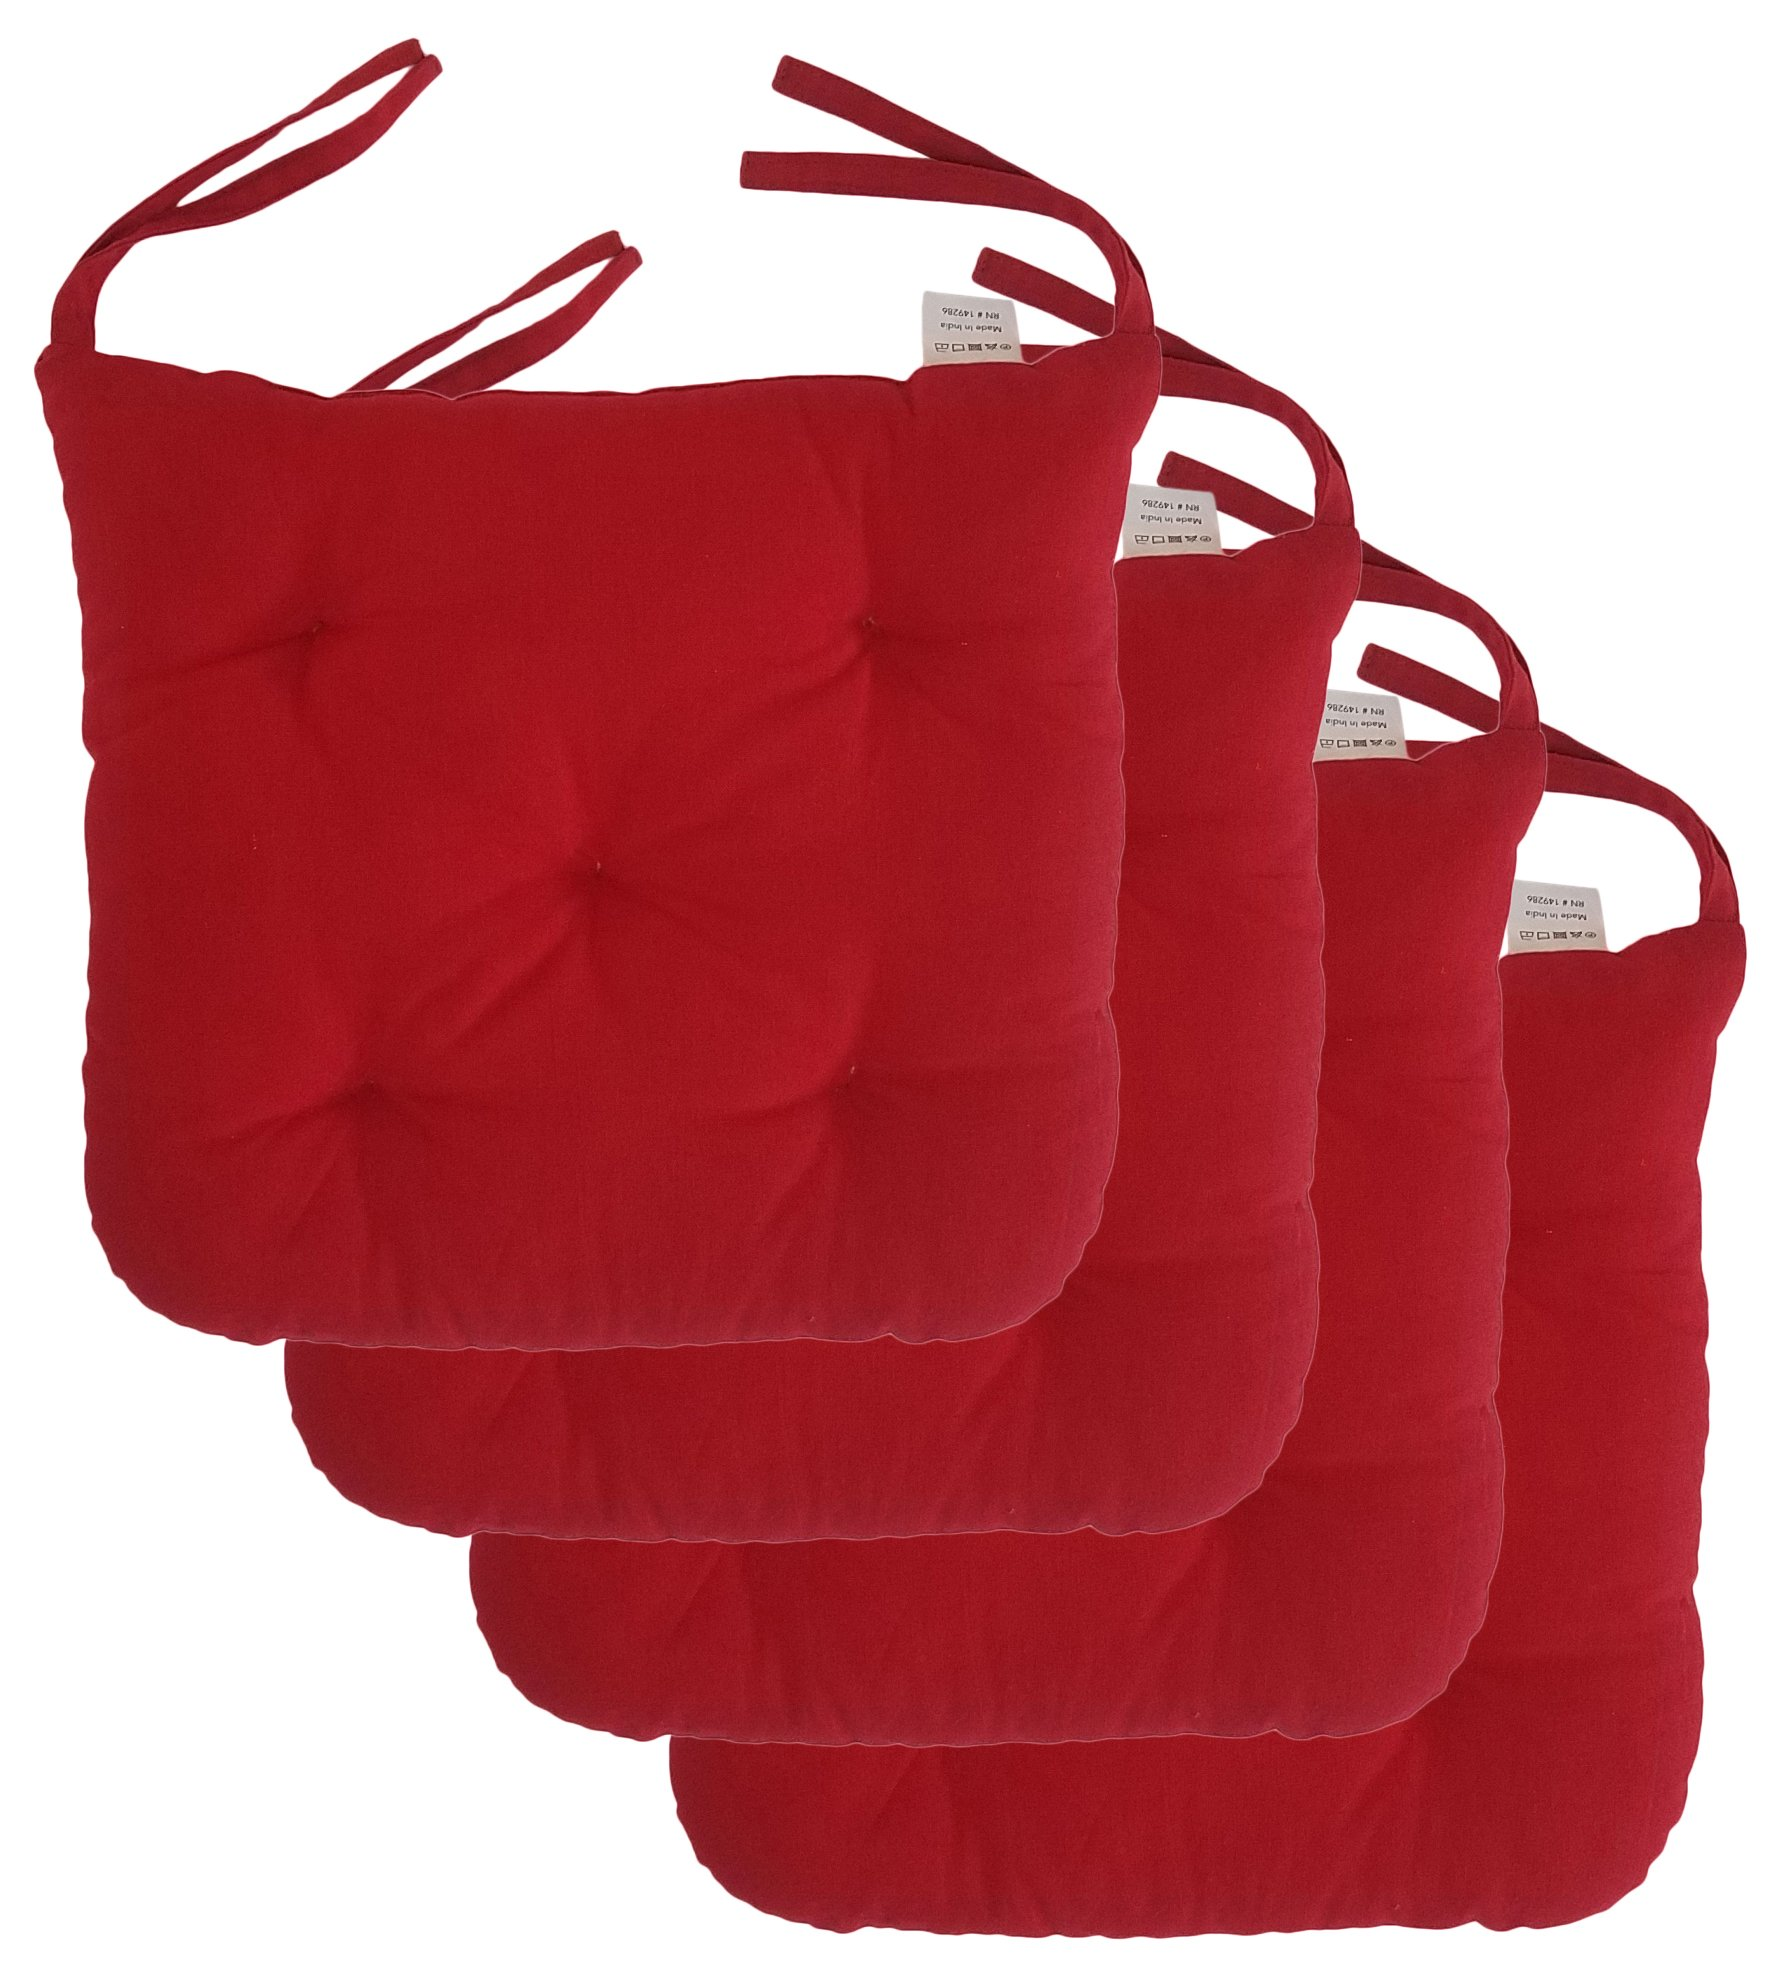 Cottone 100% Cotton Chair Pads w/Ties (Set of 4)| 16'' x 15'' Square Round | Extra-Comfortable & Soft Seat Cushions | Ergonomic Pillows for Rocking, Dining, Patio, Camping, Kitchen Chairs & More, Red